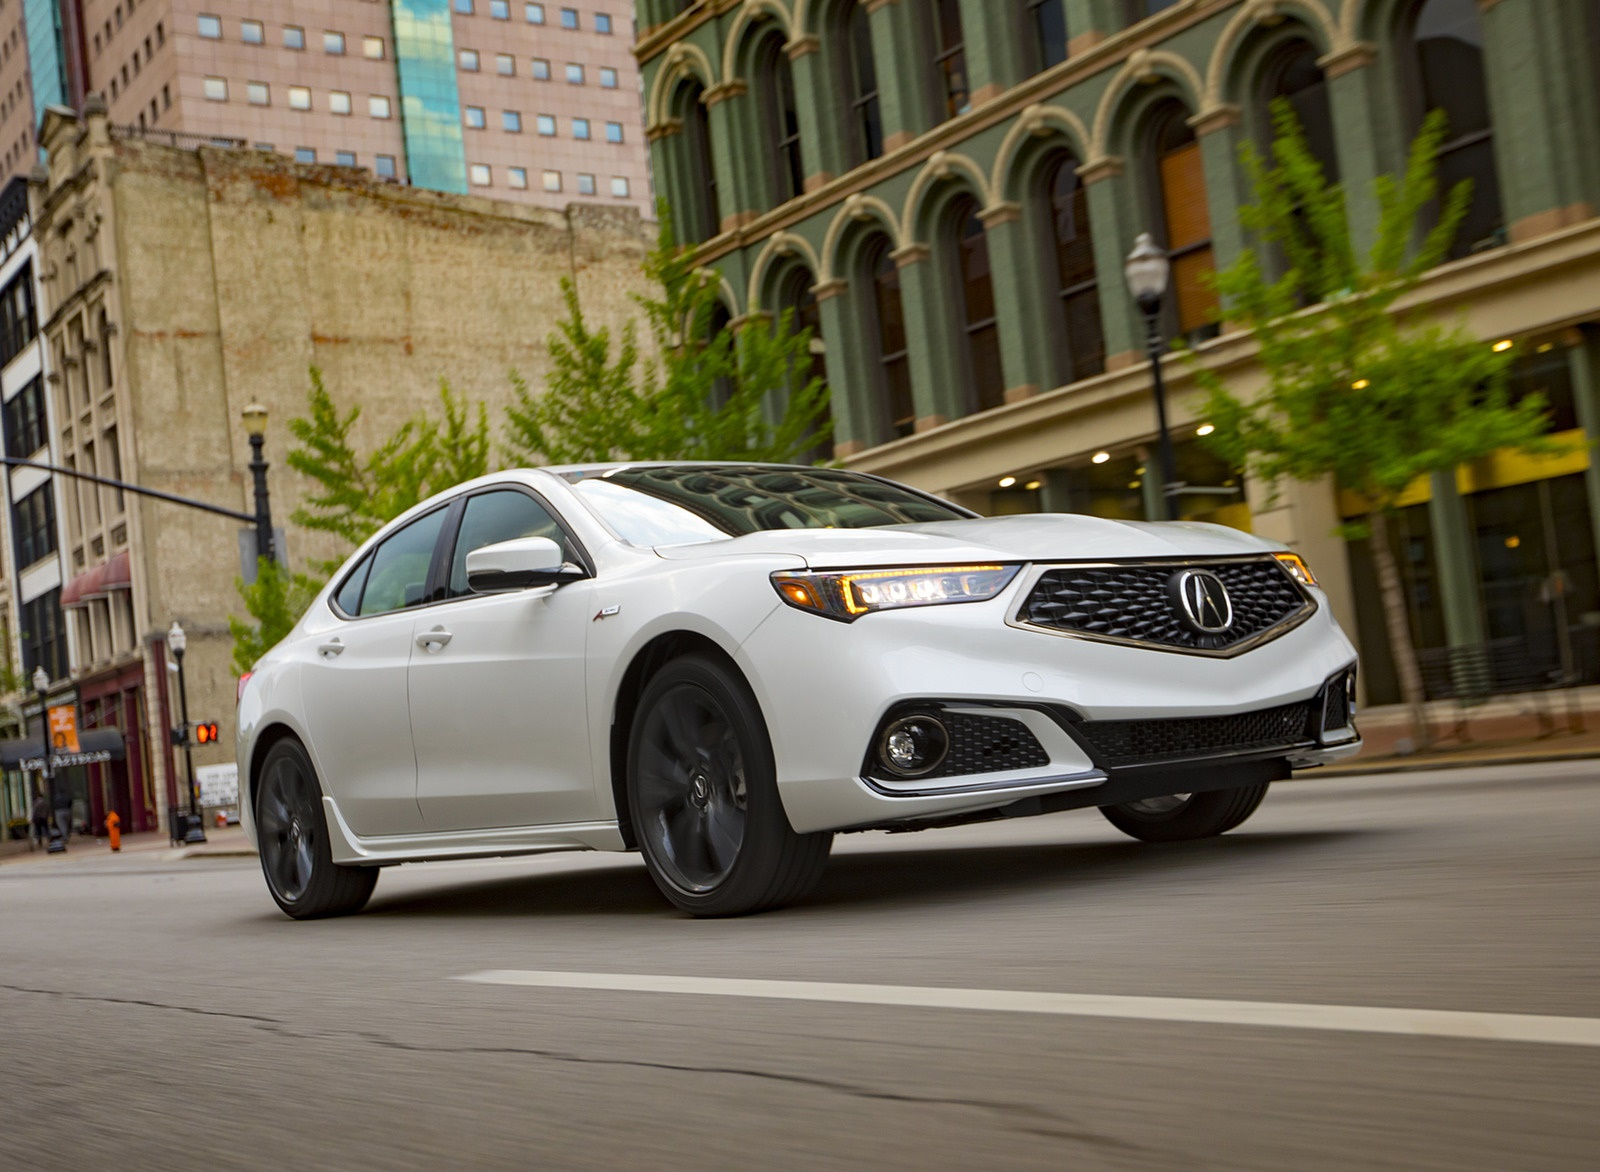 2019 Acura TLX A-Spec SH-AWD Front Three-Quarter Wallpapers (10)